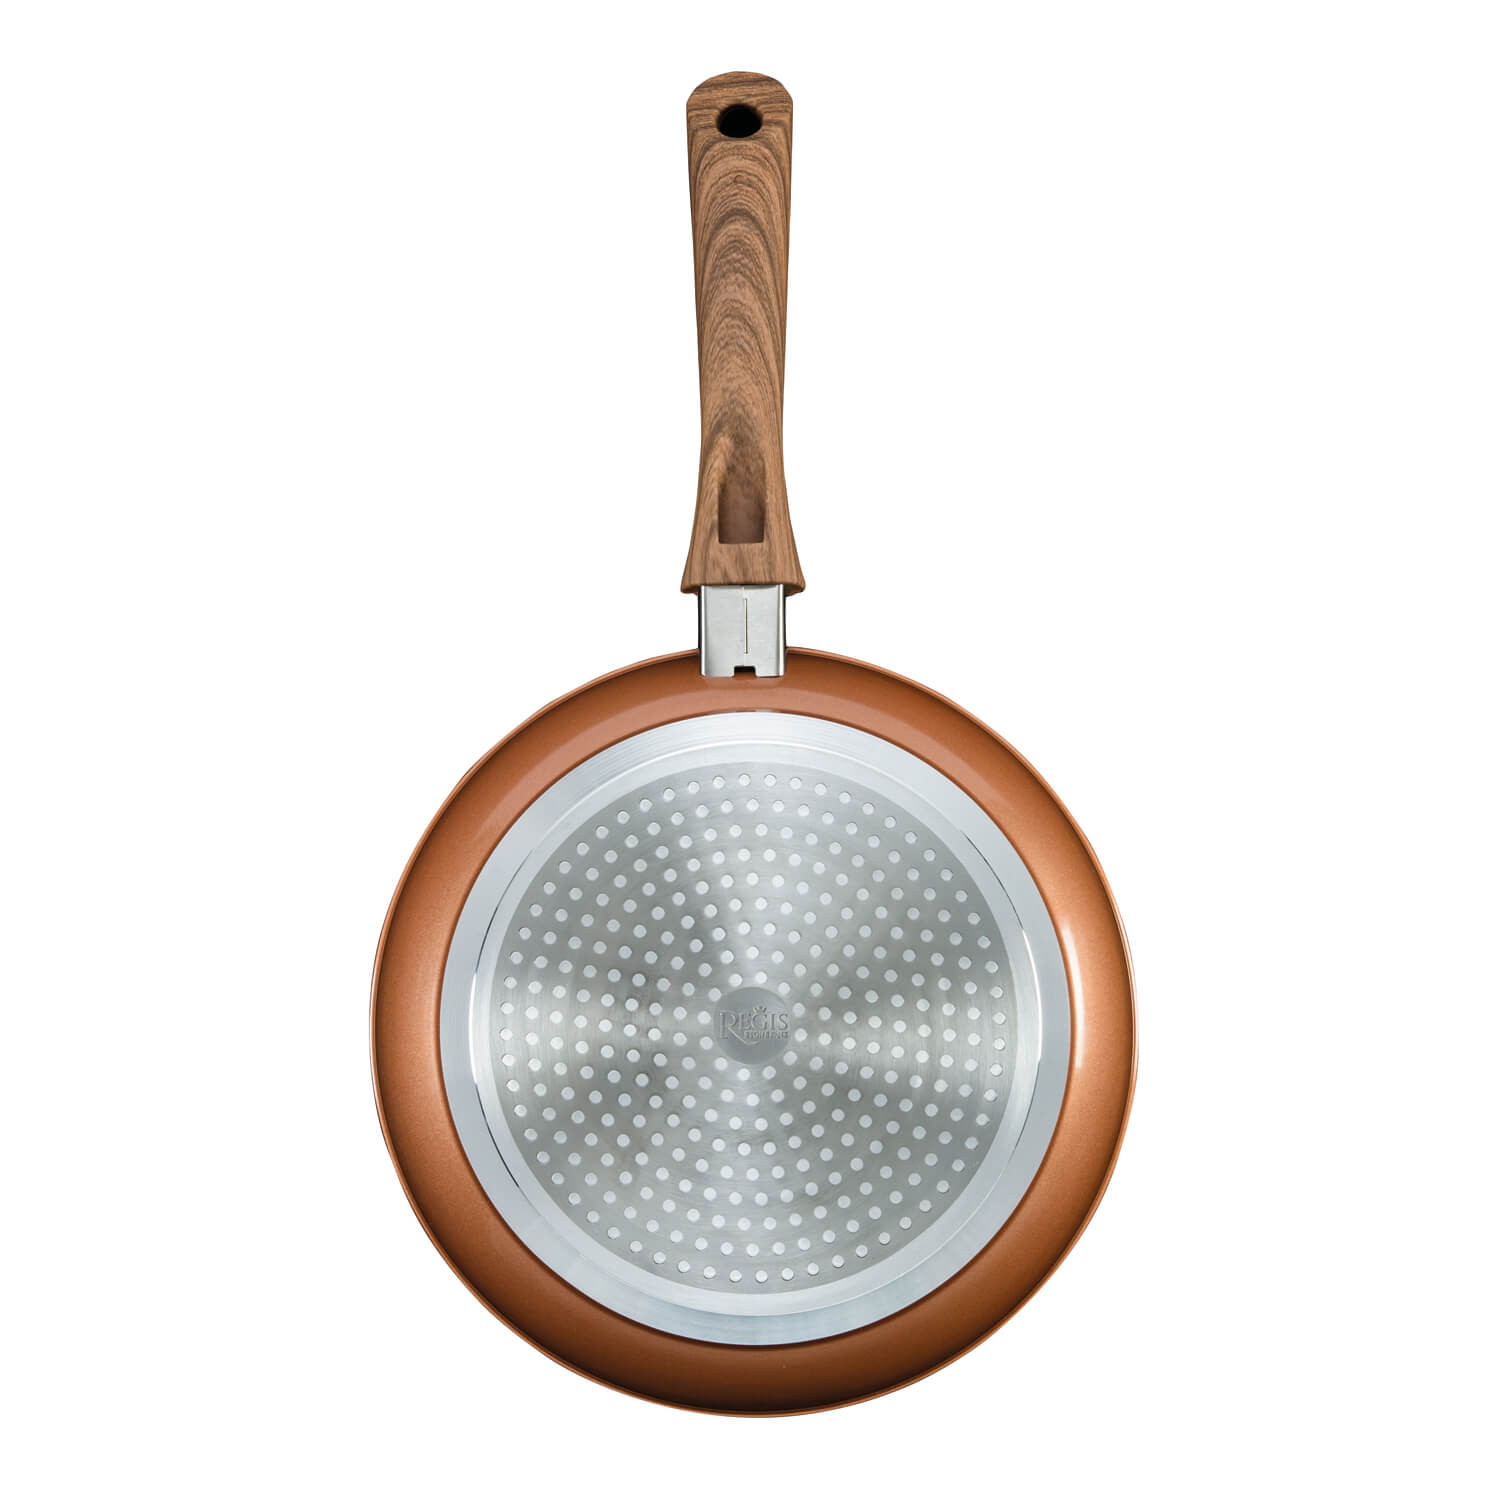 Jml Copper Stone 24cm Frying Pan Home Store More